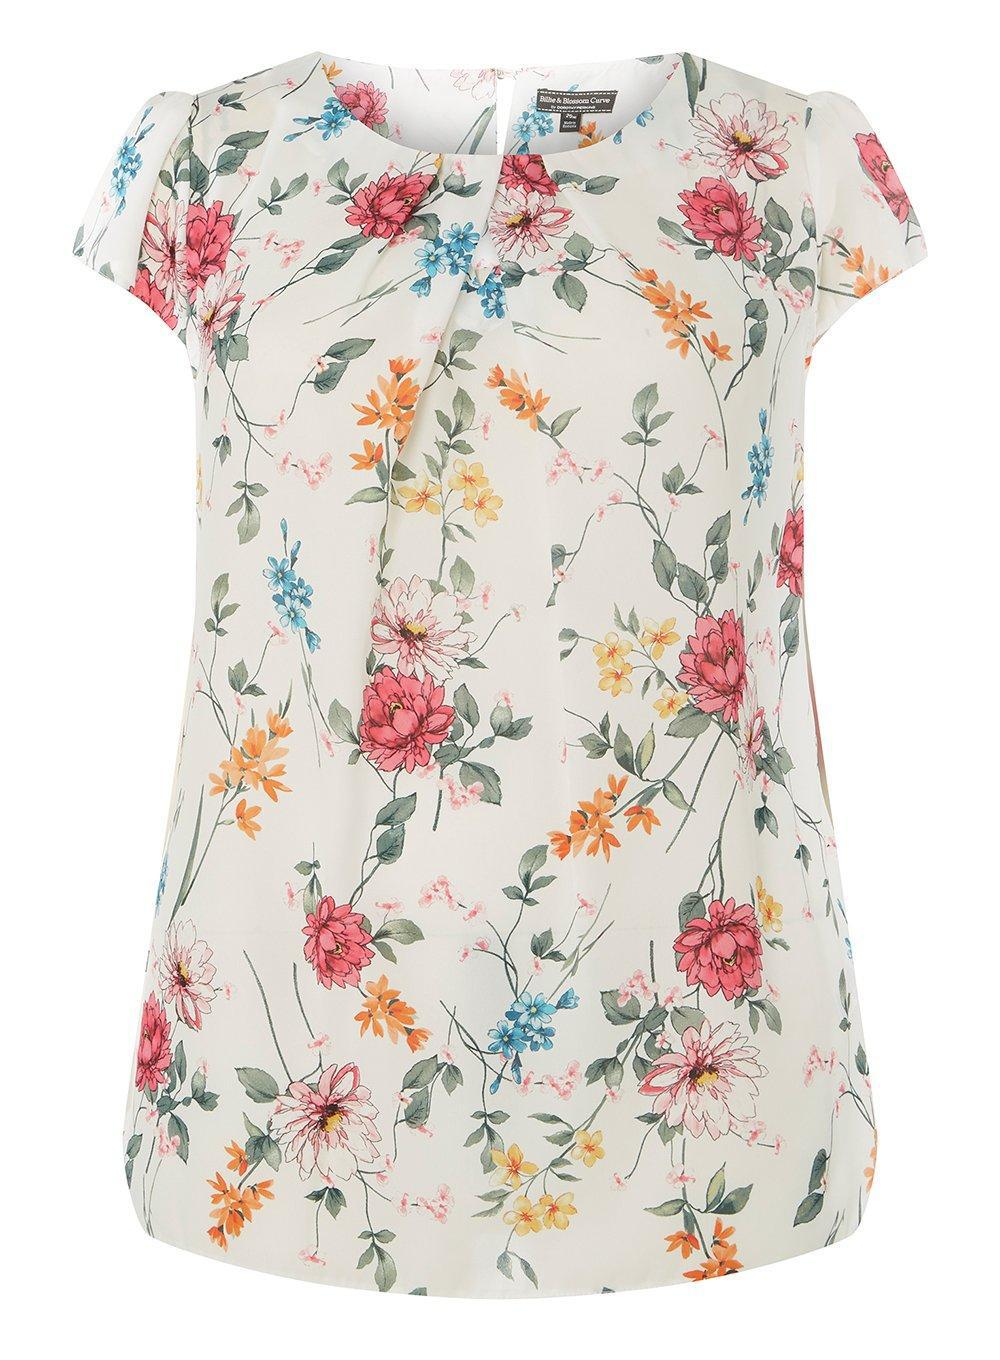 Cheap Official Hot Sale Cheap Price Dorothy Perkins Womens **Billie & Blossom Curve Butterfly Shell Top- Sneakernews Cheap Online RqprZsdNny